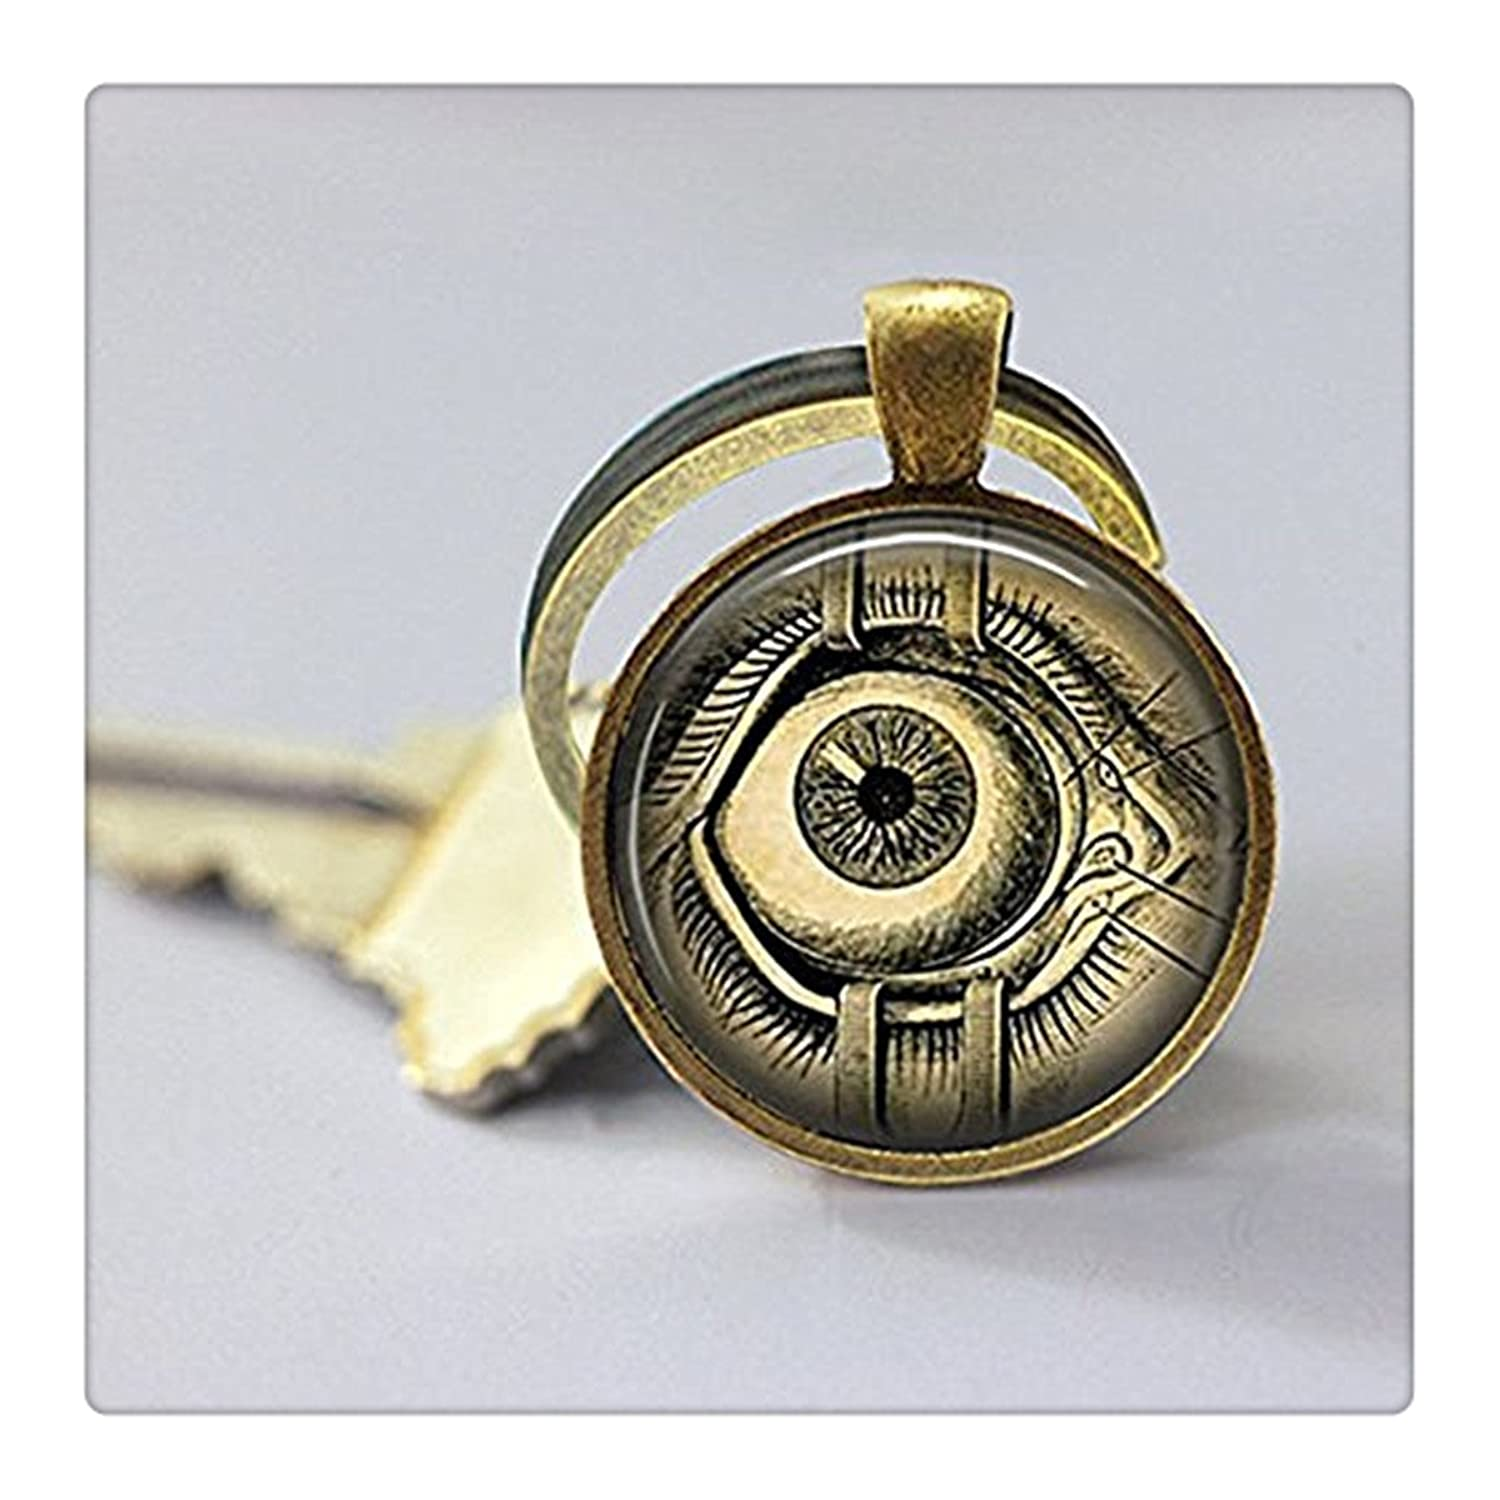 Amazon.com: Steampunk Keychain, Human Anatomy, Evil Eye, Steam Punk ...